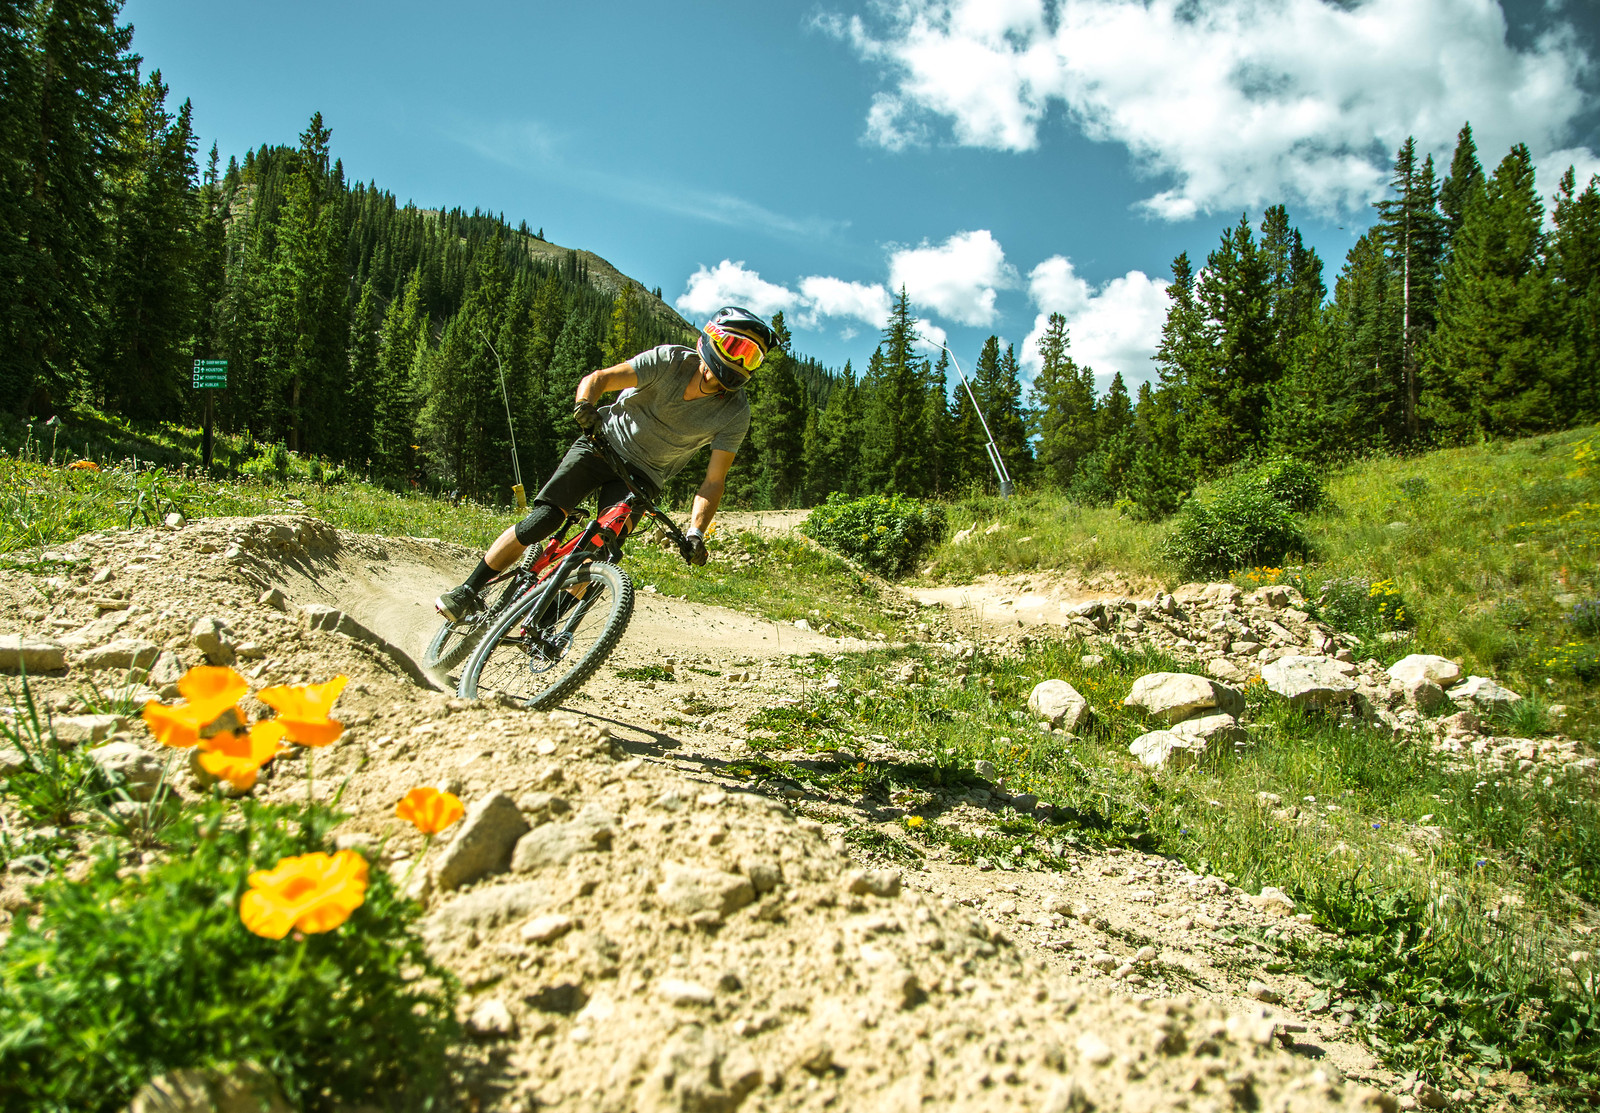 Alpine berms on offer - carbonmsc - Mountain Biking Pictures - Vital MTB